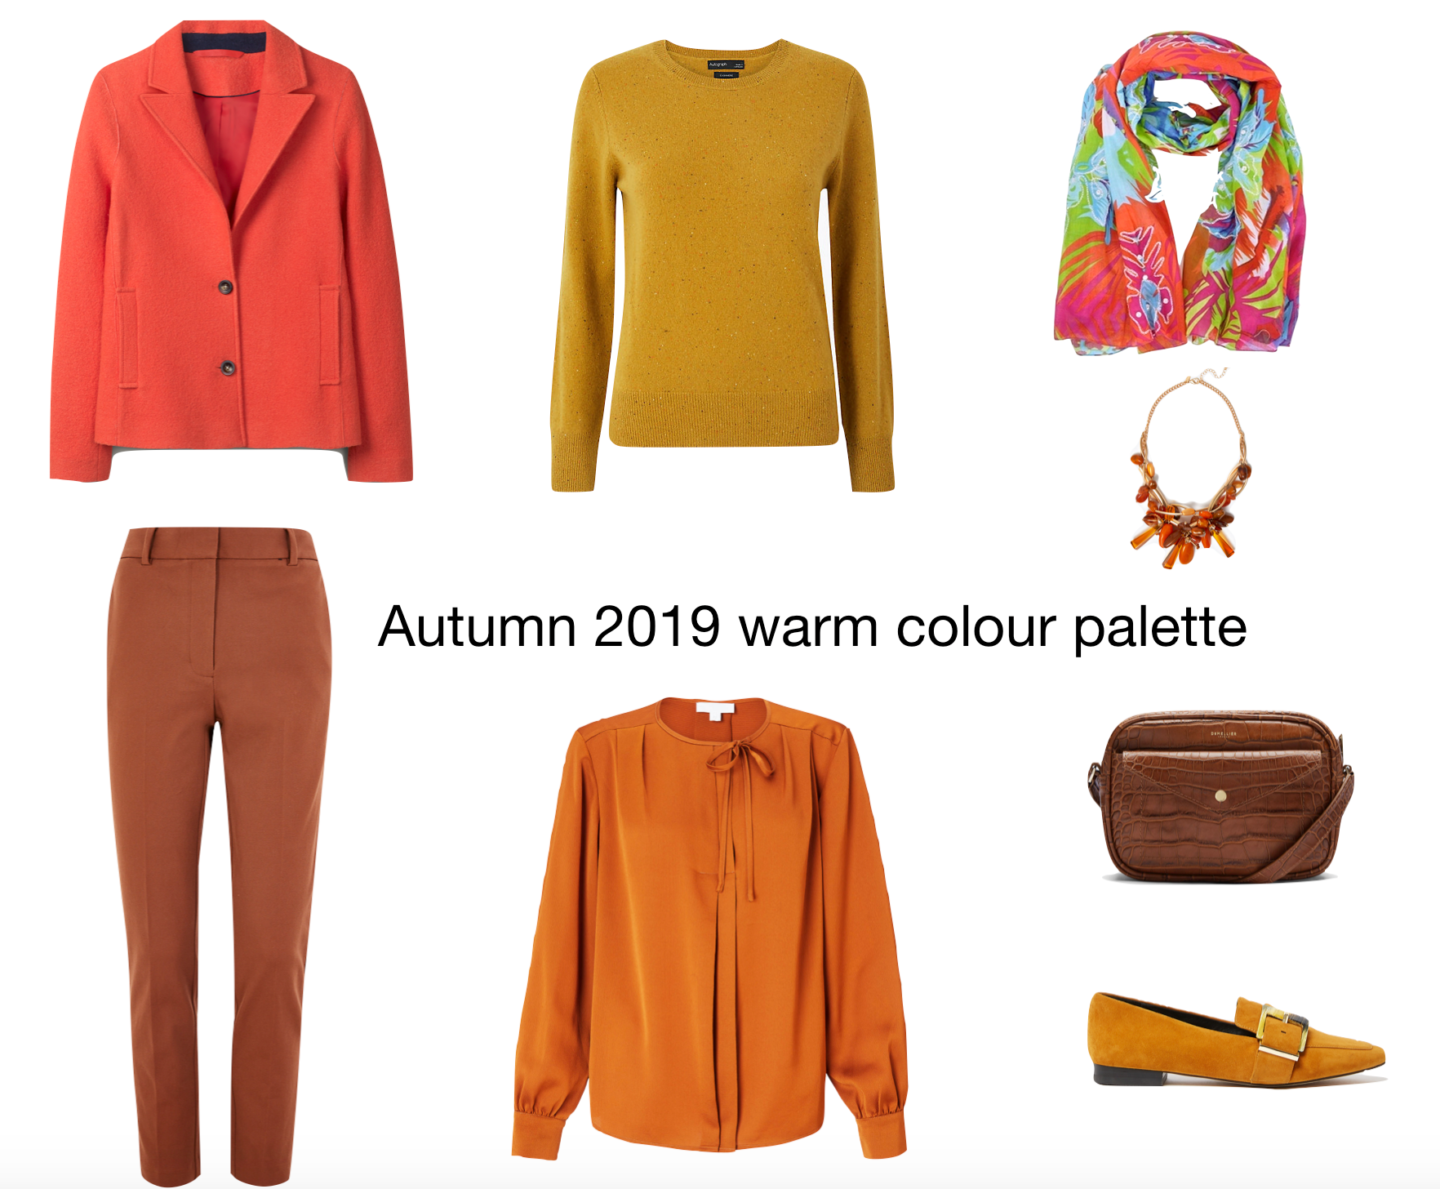 Autumn 2019 colour palette